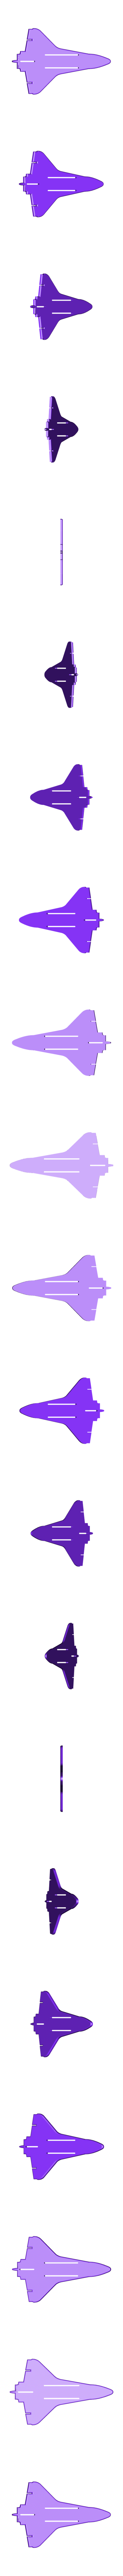 Space Decals_ Shuttle.stl Download free STL file Space Decals • 3D printing template, Hom3d